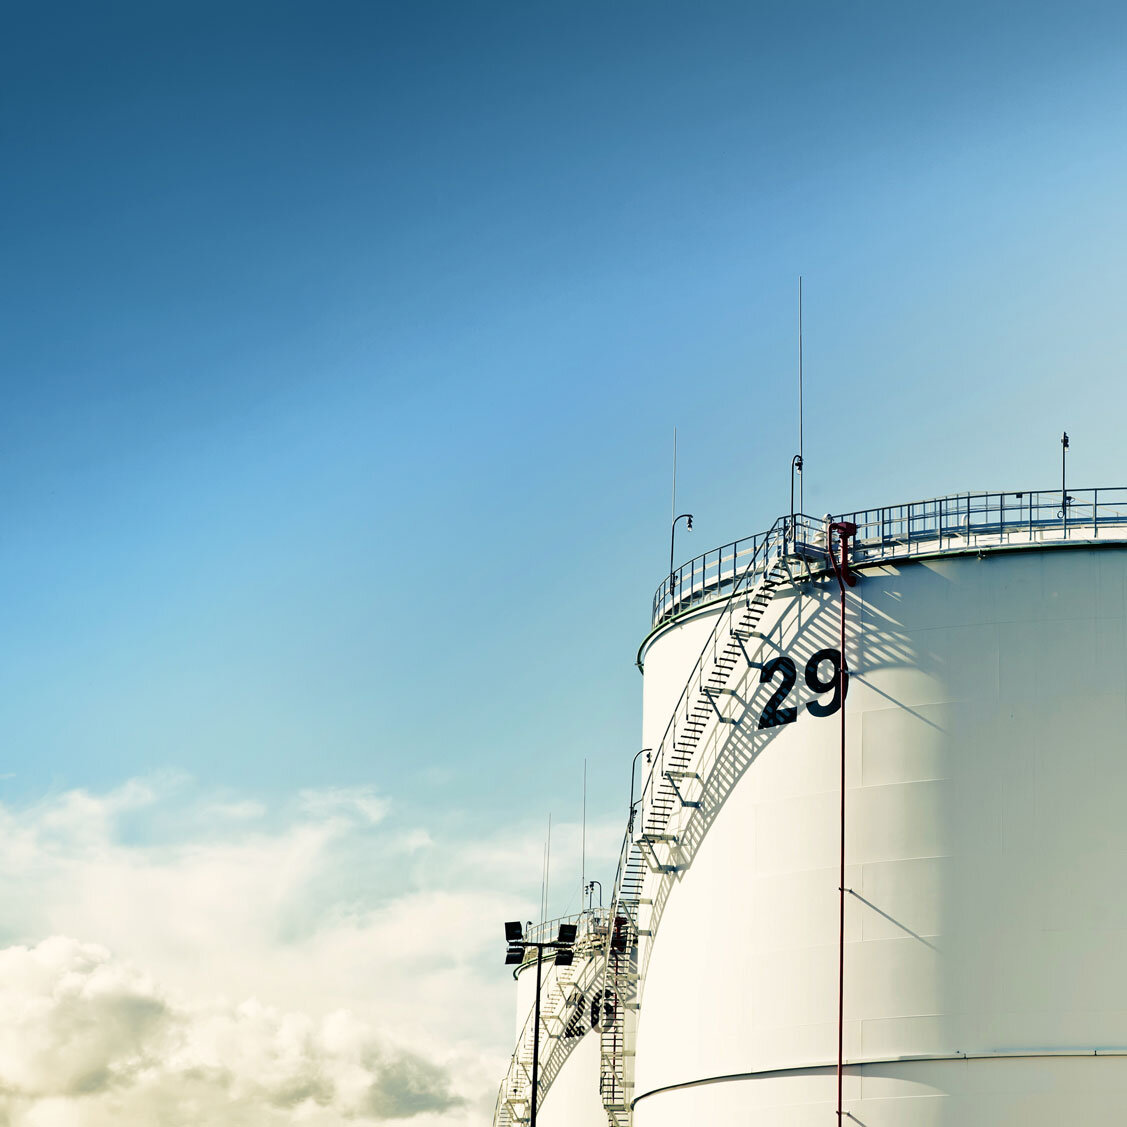 Custom Refinery Uptime Plans - Contact CAP to learn how our experts can ensure uninterrupted operations.